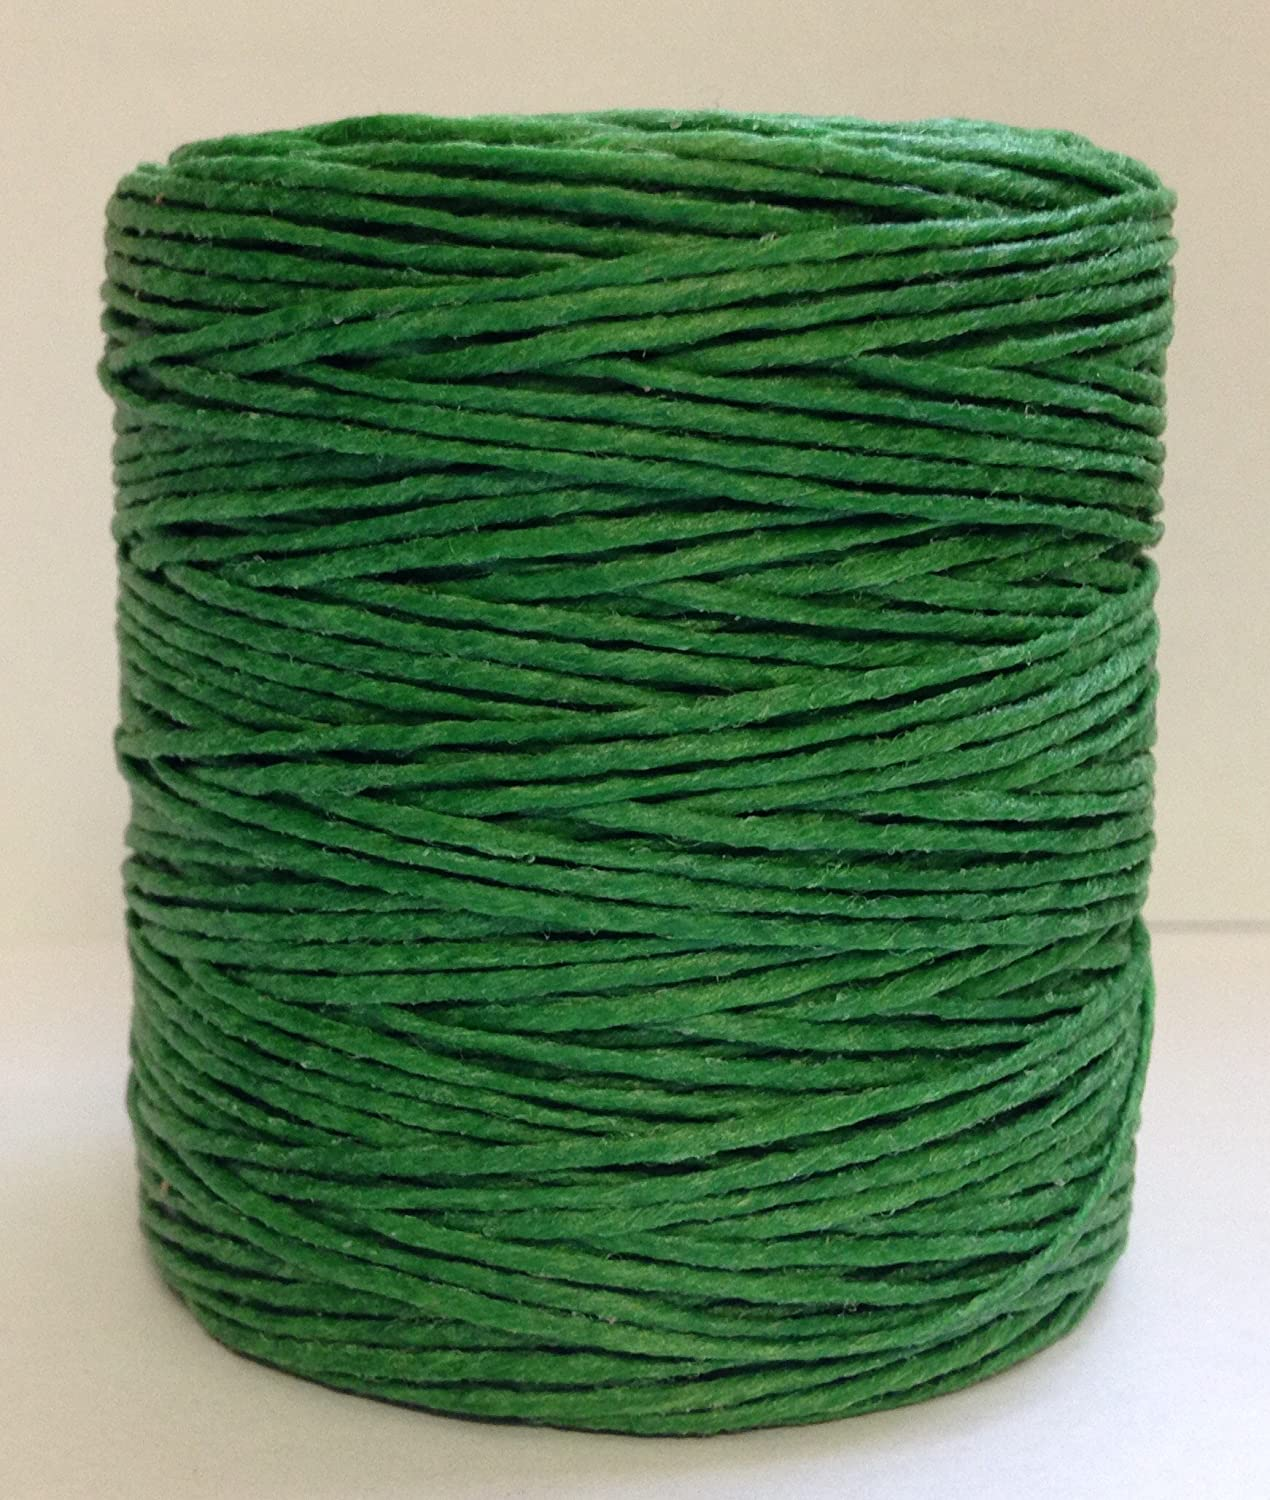 Maine Thread - .030' Kelly Green Waxed Polycord. 210 feet each. Includes 2 spools.